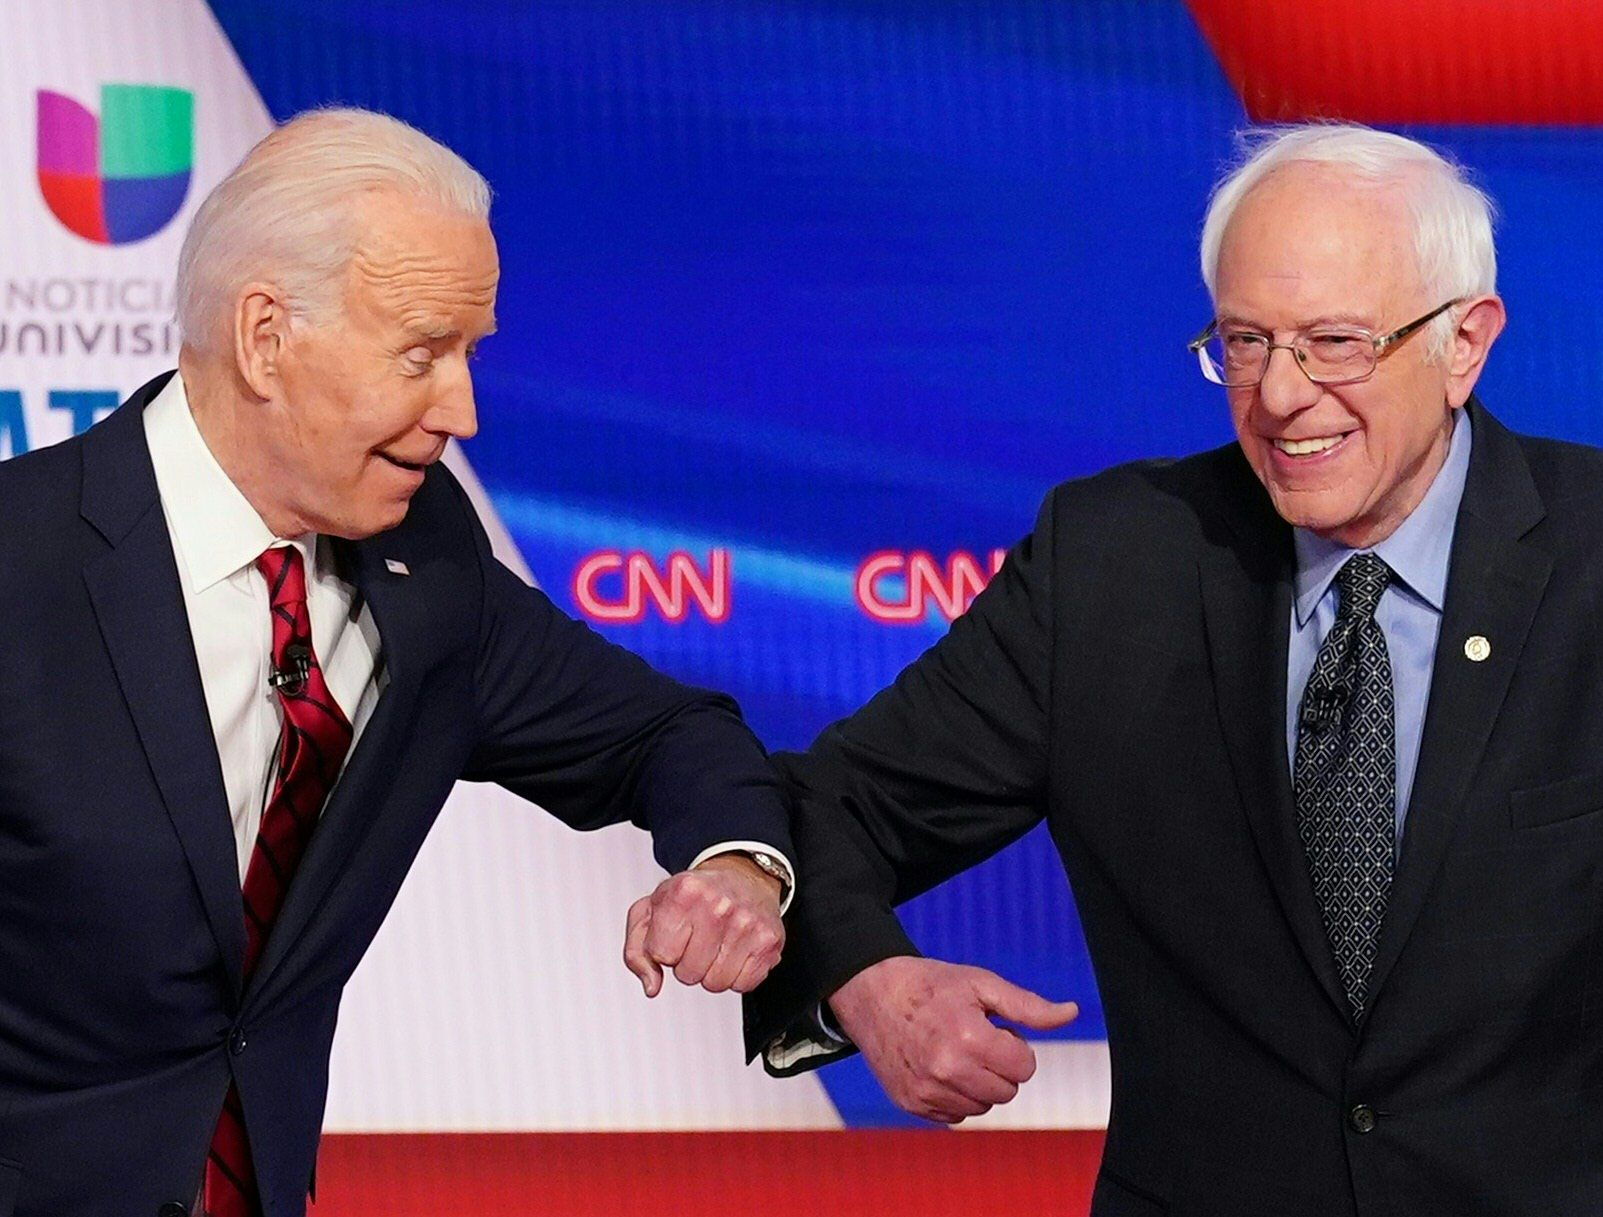 In this file photo taken on March 15, 2020 Democratic presidential hopefuls former vice president Joe Biden (L) and Senator Bernie Sanders greet each other with a safe elbow bump before the start of the 11th Democratic Party 2020 presidential debate in a CNN Washington Bureau studio.